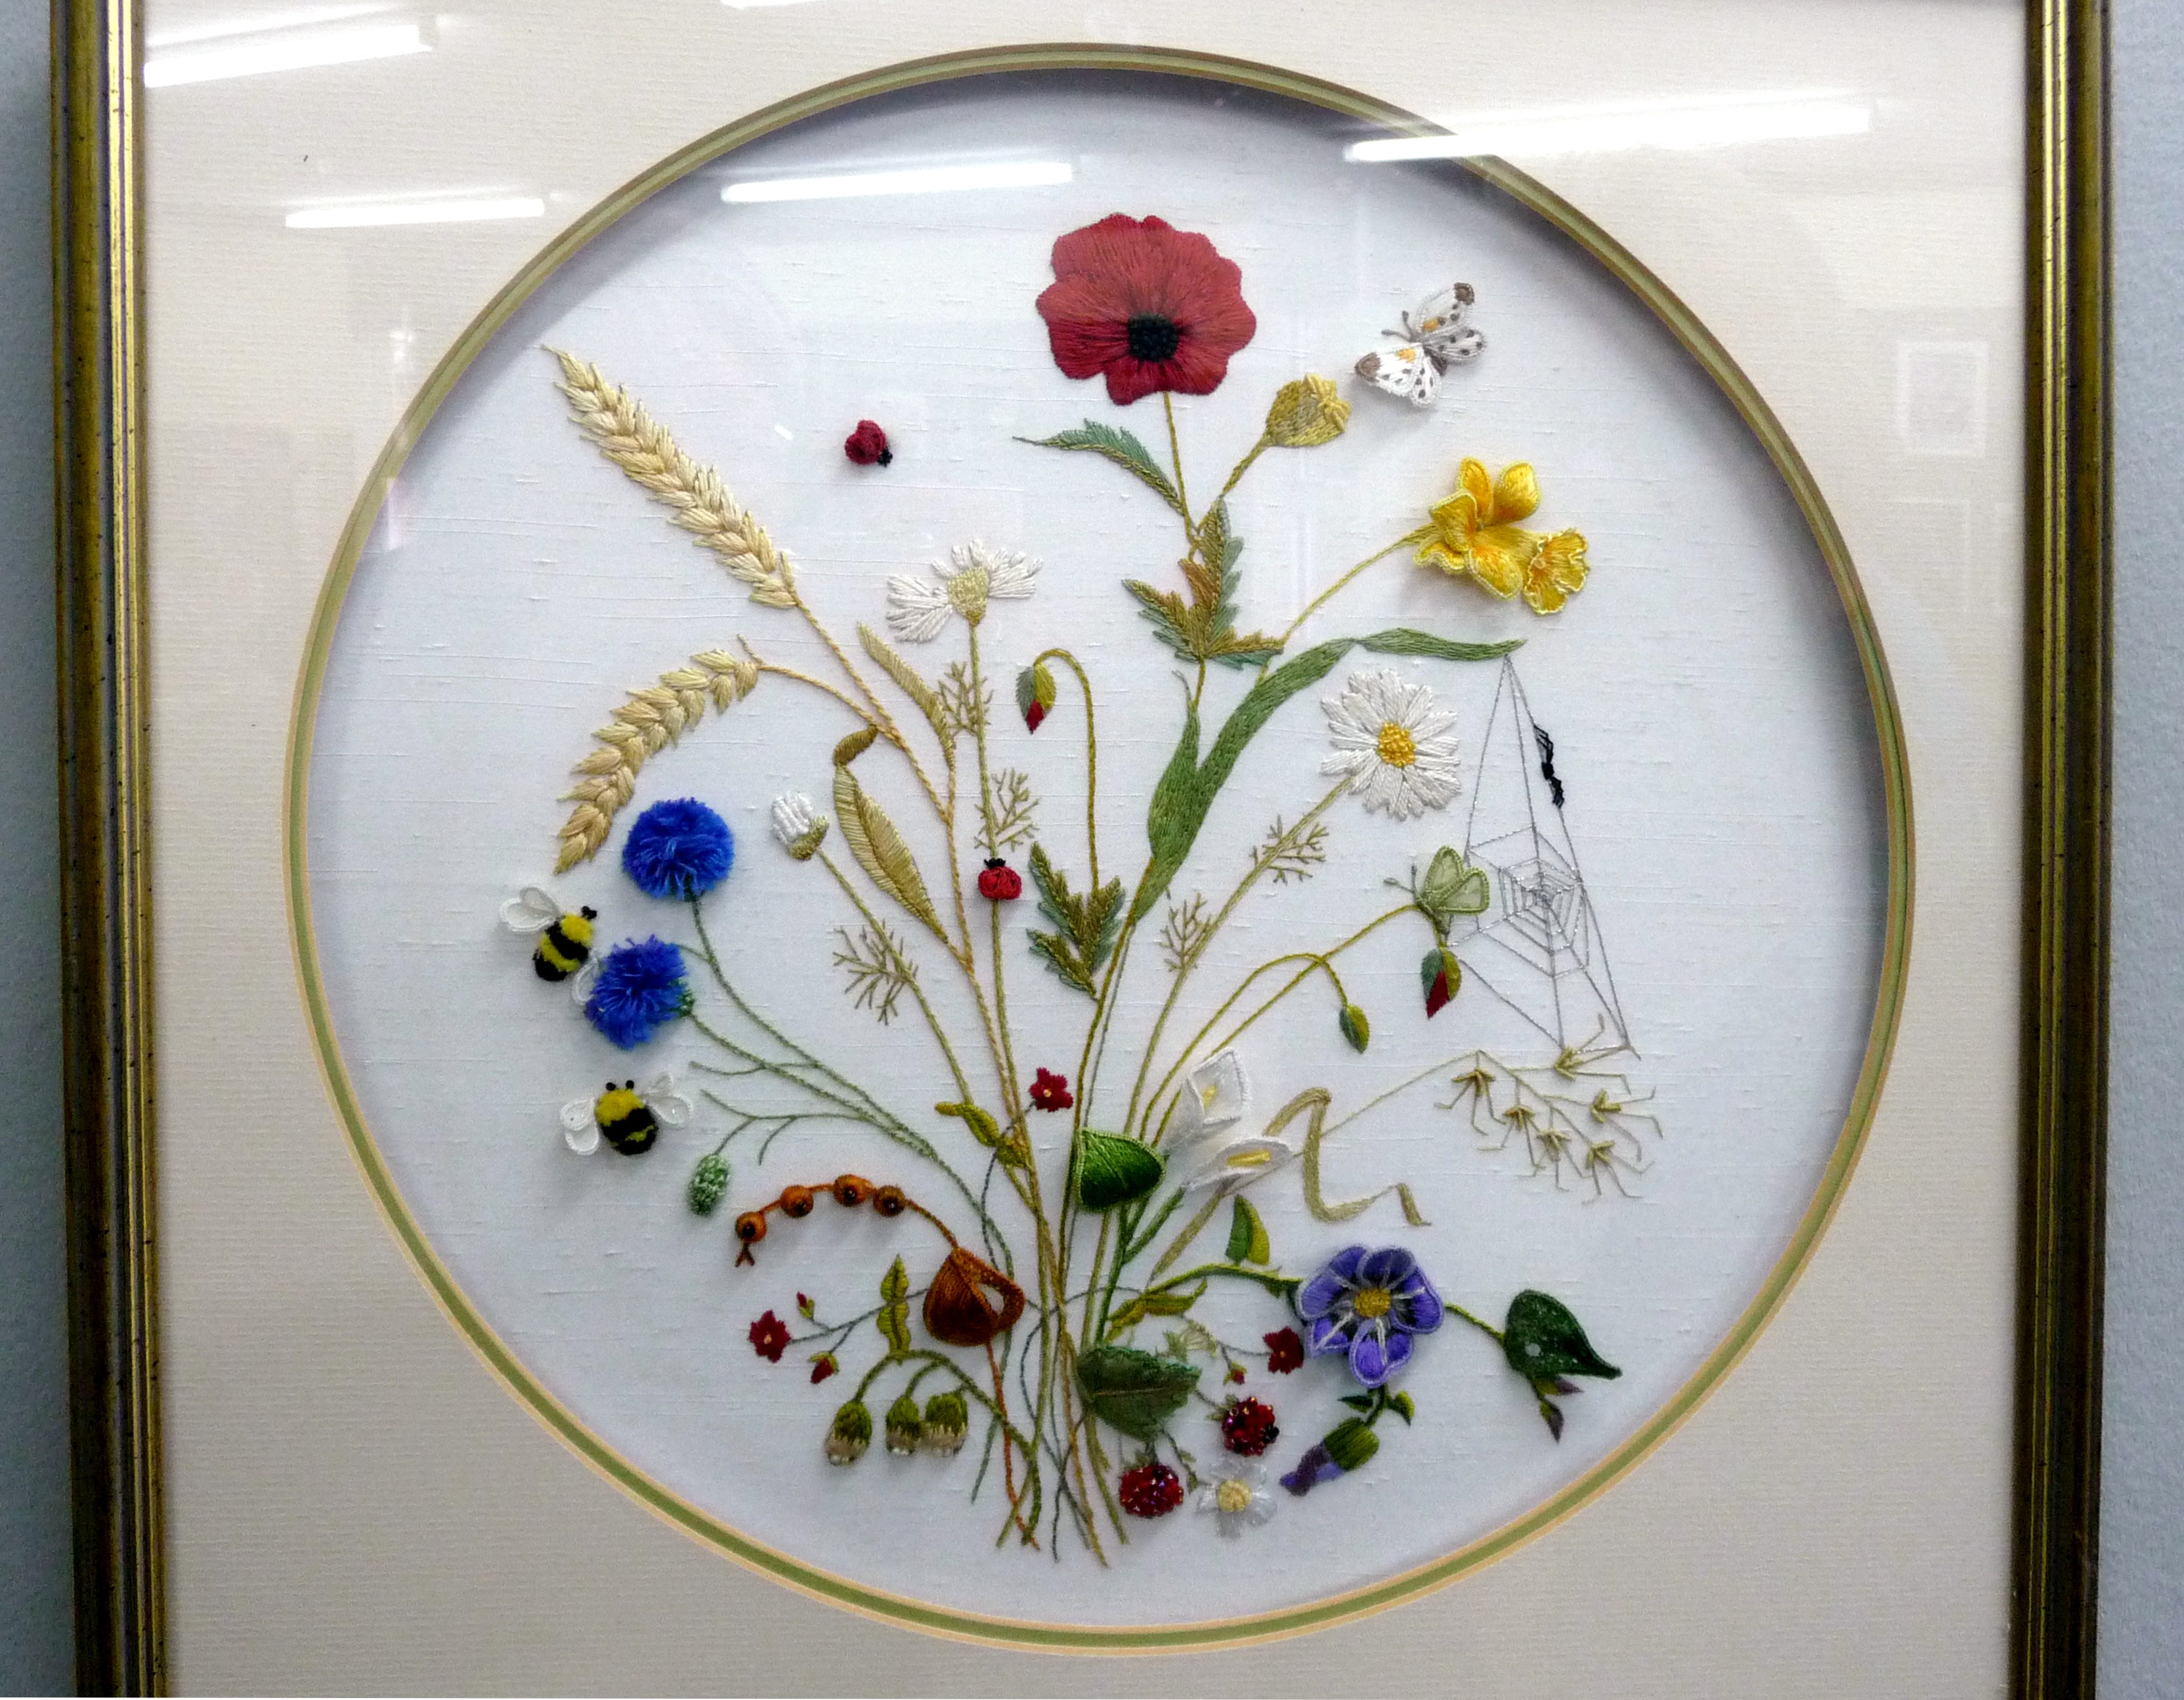 embroidery by Anne Greenhalgh